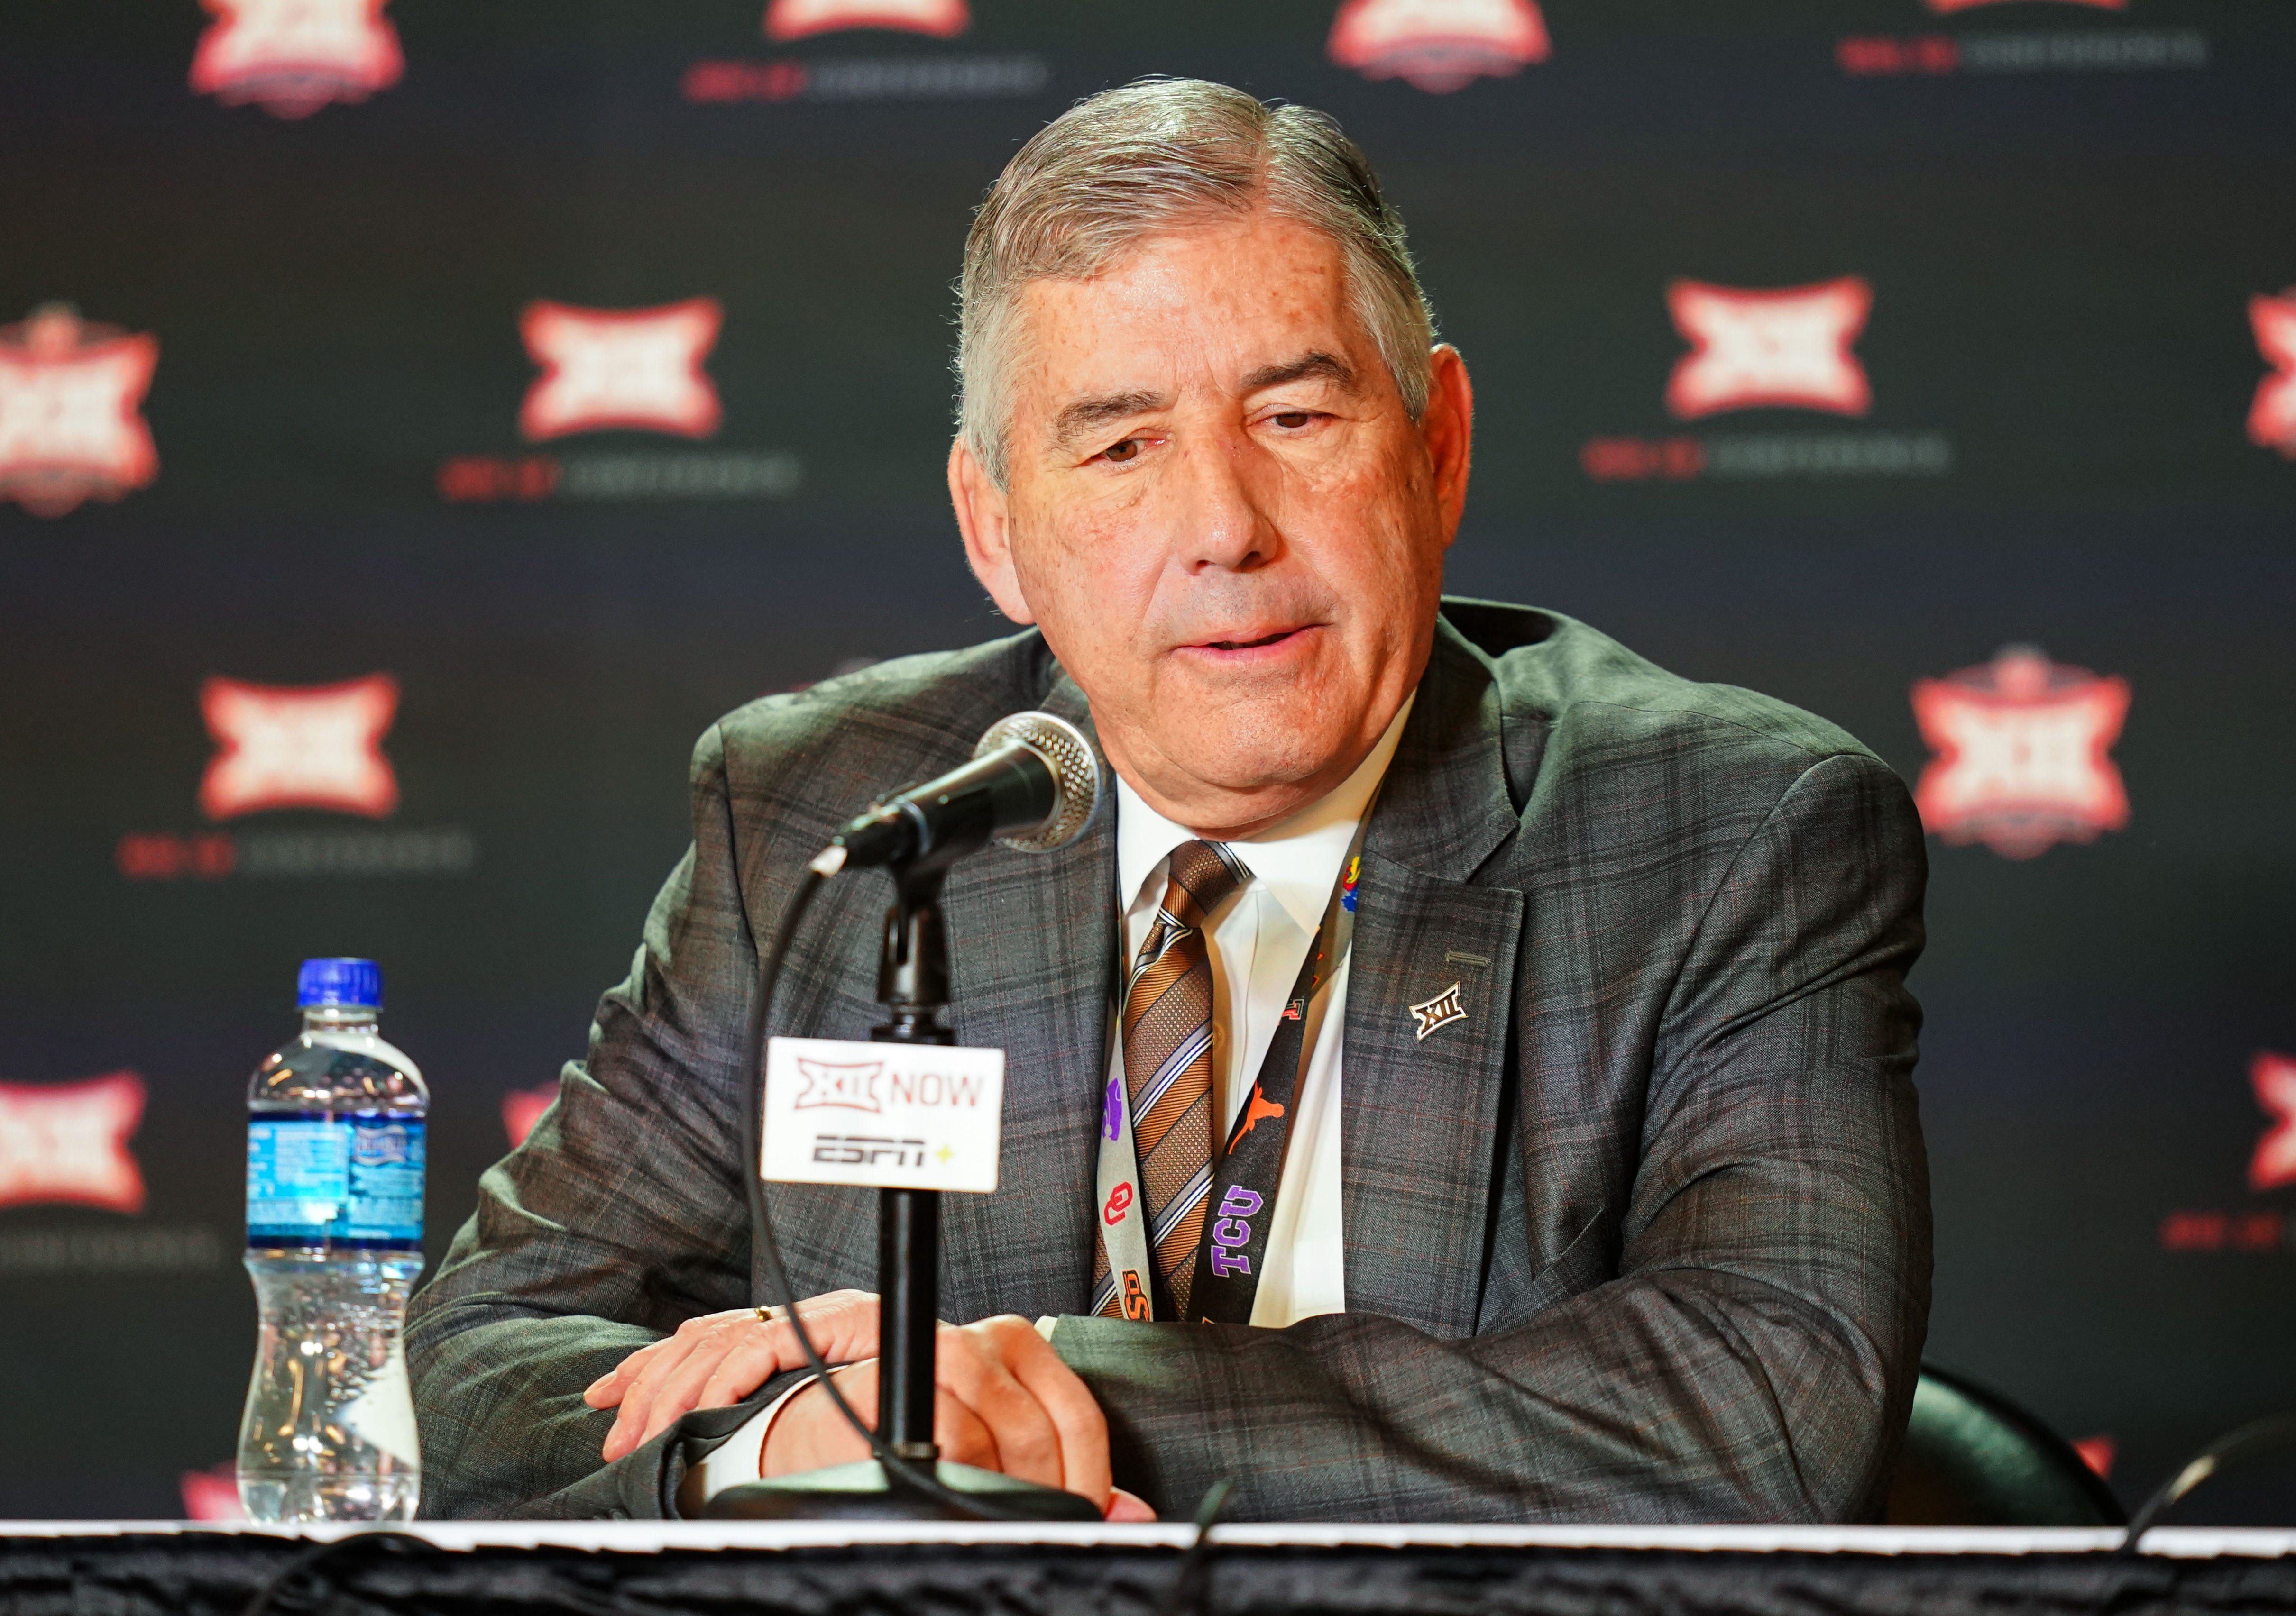 Big 12 commissioner Bob Bowlsby says conference has made no decision on fall football season yet